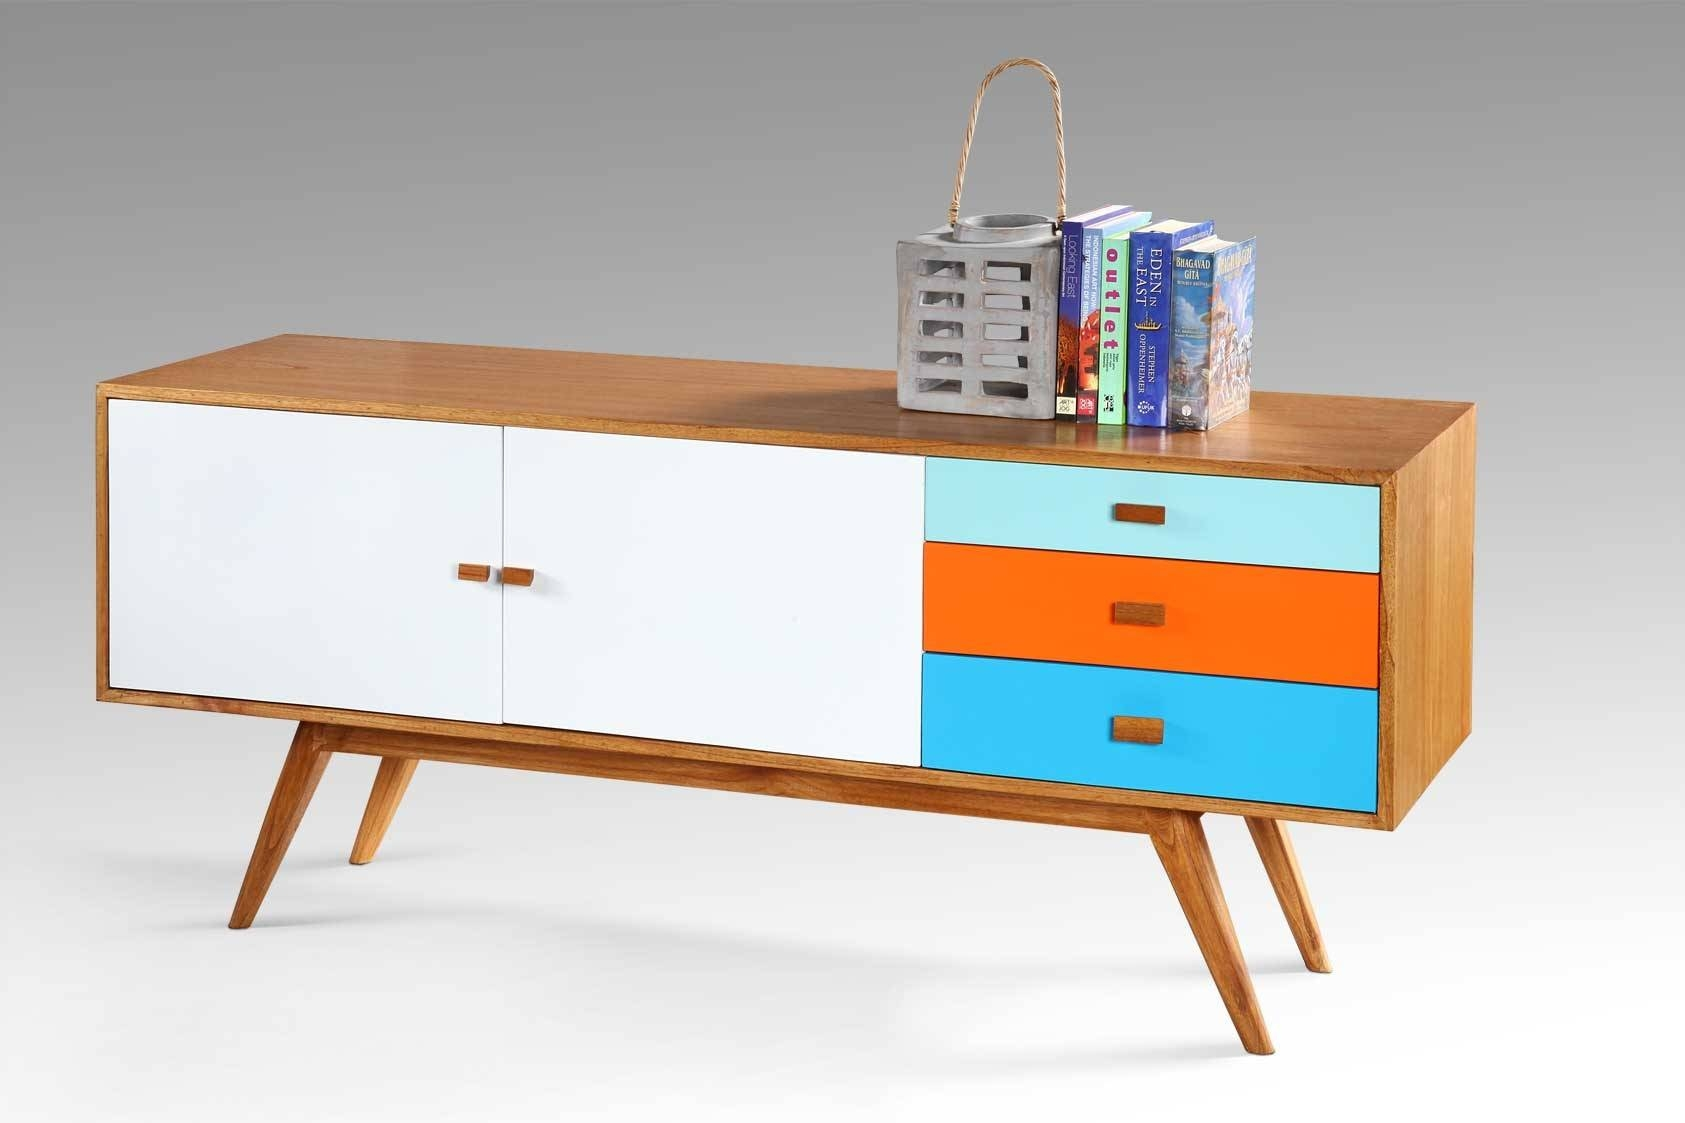 Pasion For Retro - Mia Casa - Dress Up Your Home in Retro Sideboards (Image 12 of 30)